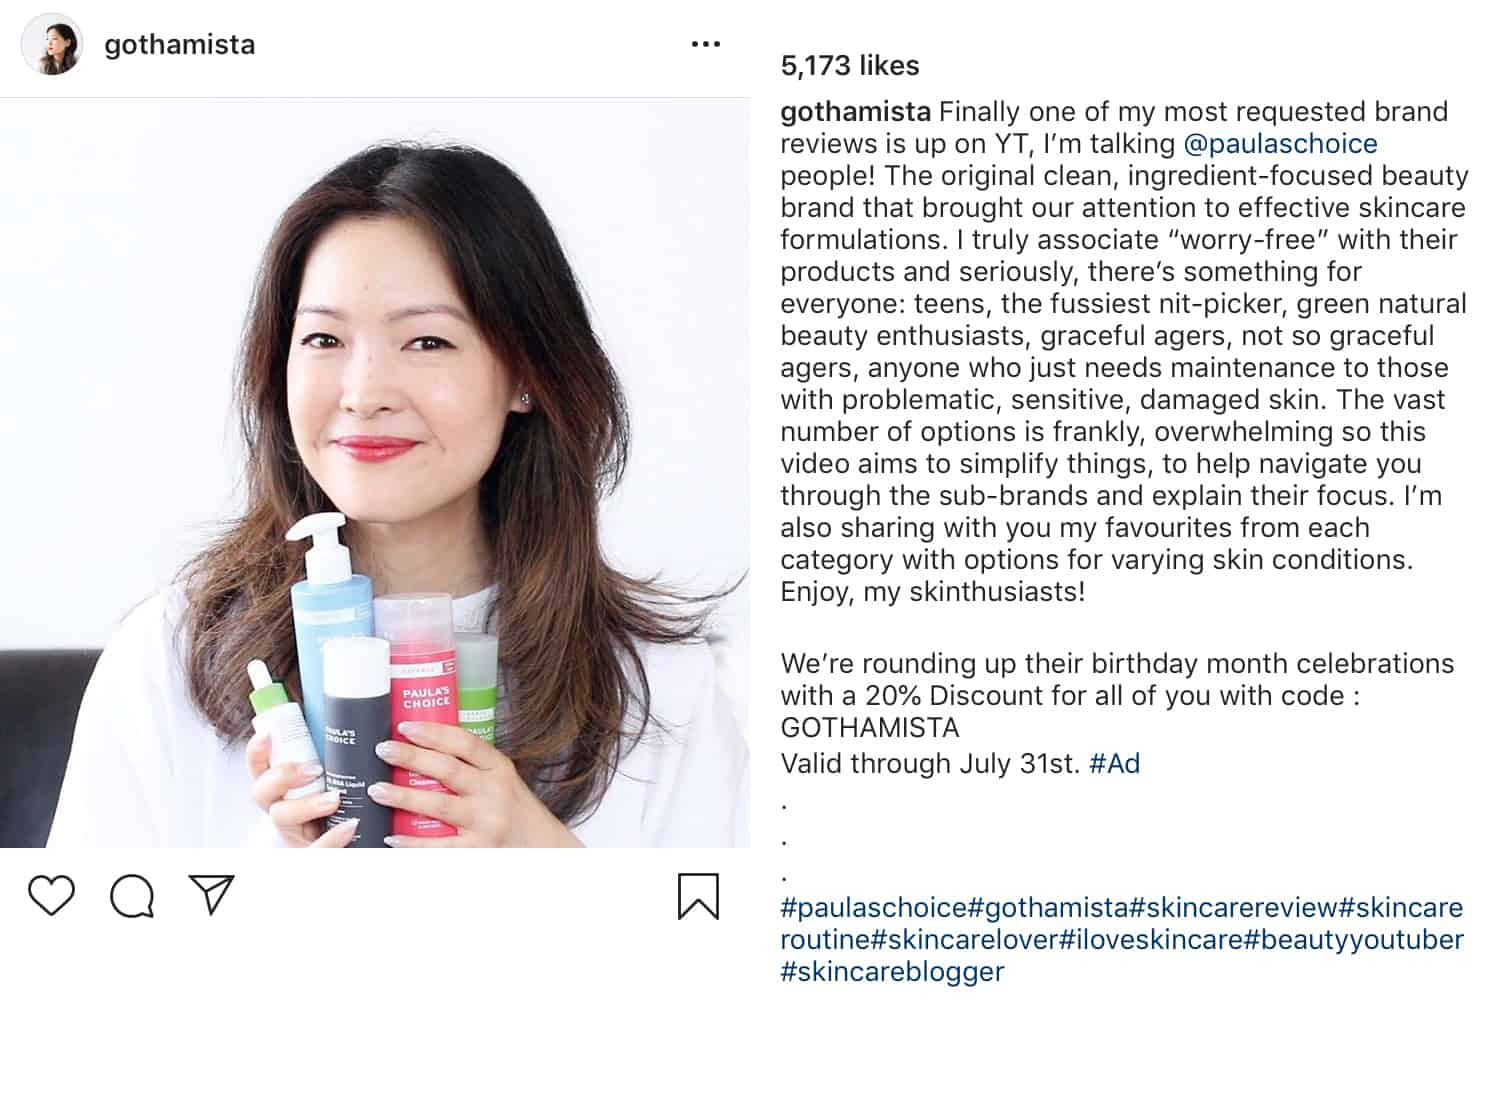 how to market on instagram through influencers